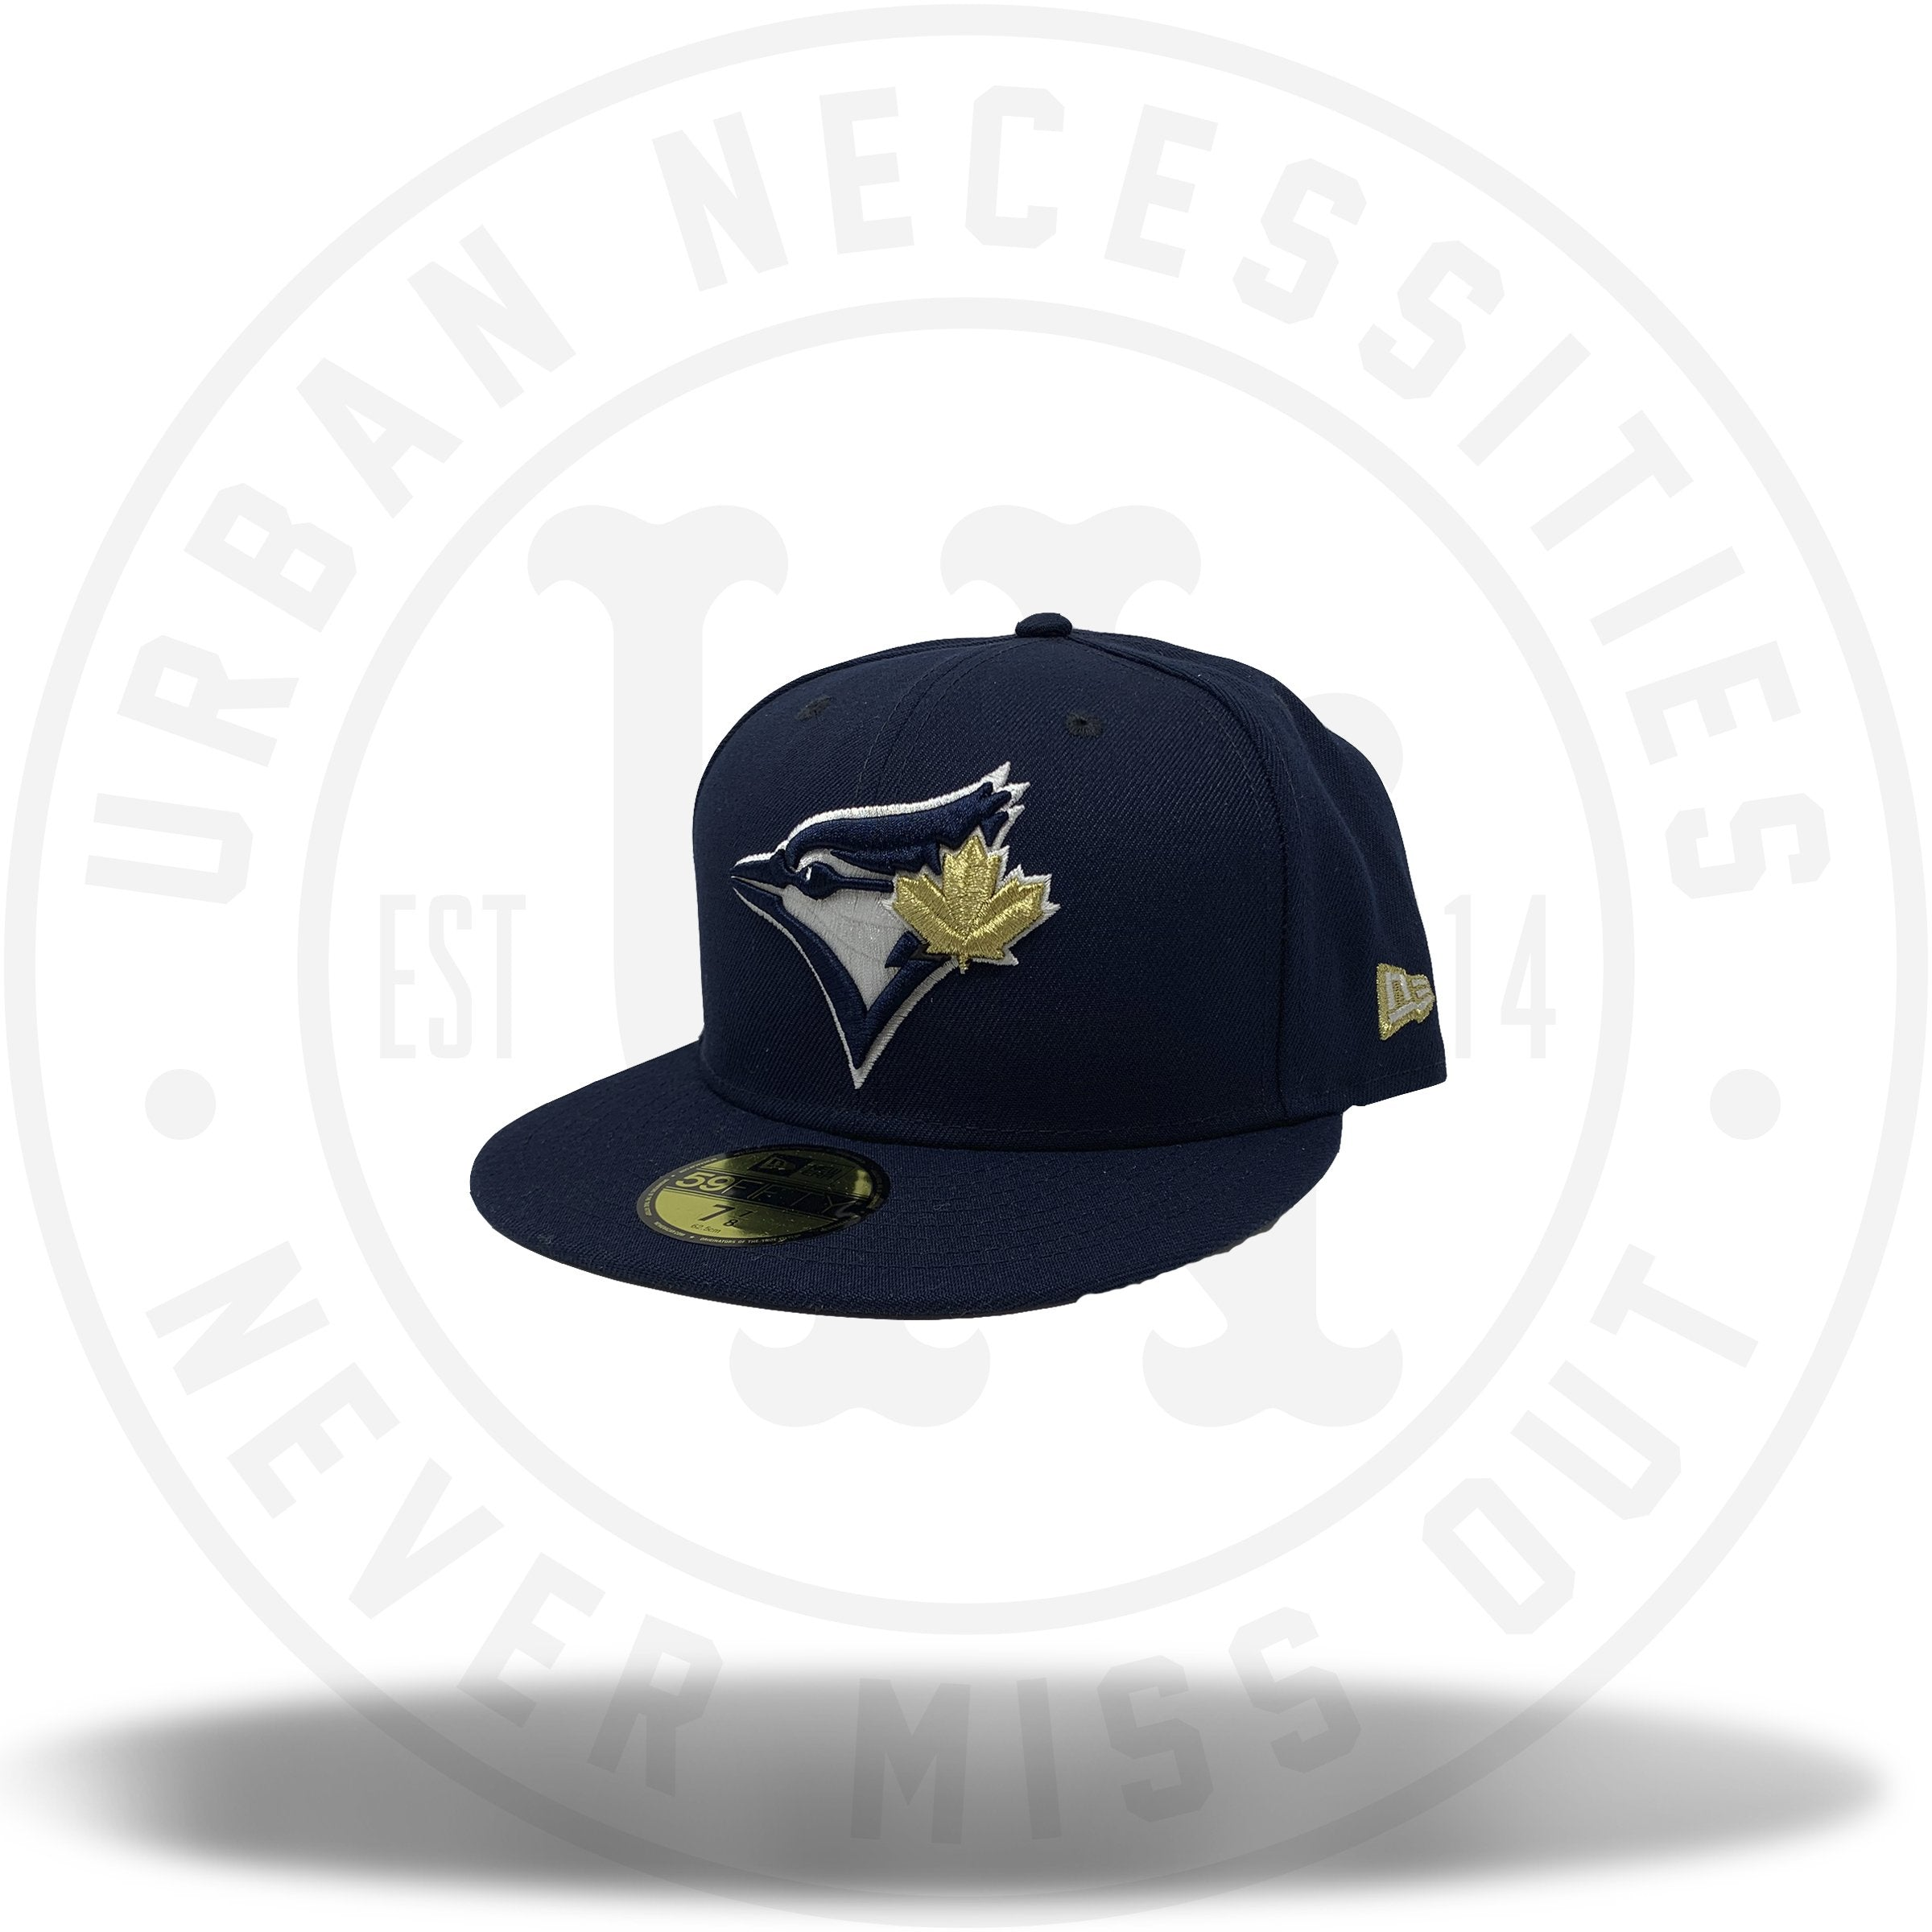 brand new 2725f 3c481 New Era MLB Toronto Blue Jays Navy Gold Fitted 59Fifty